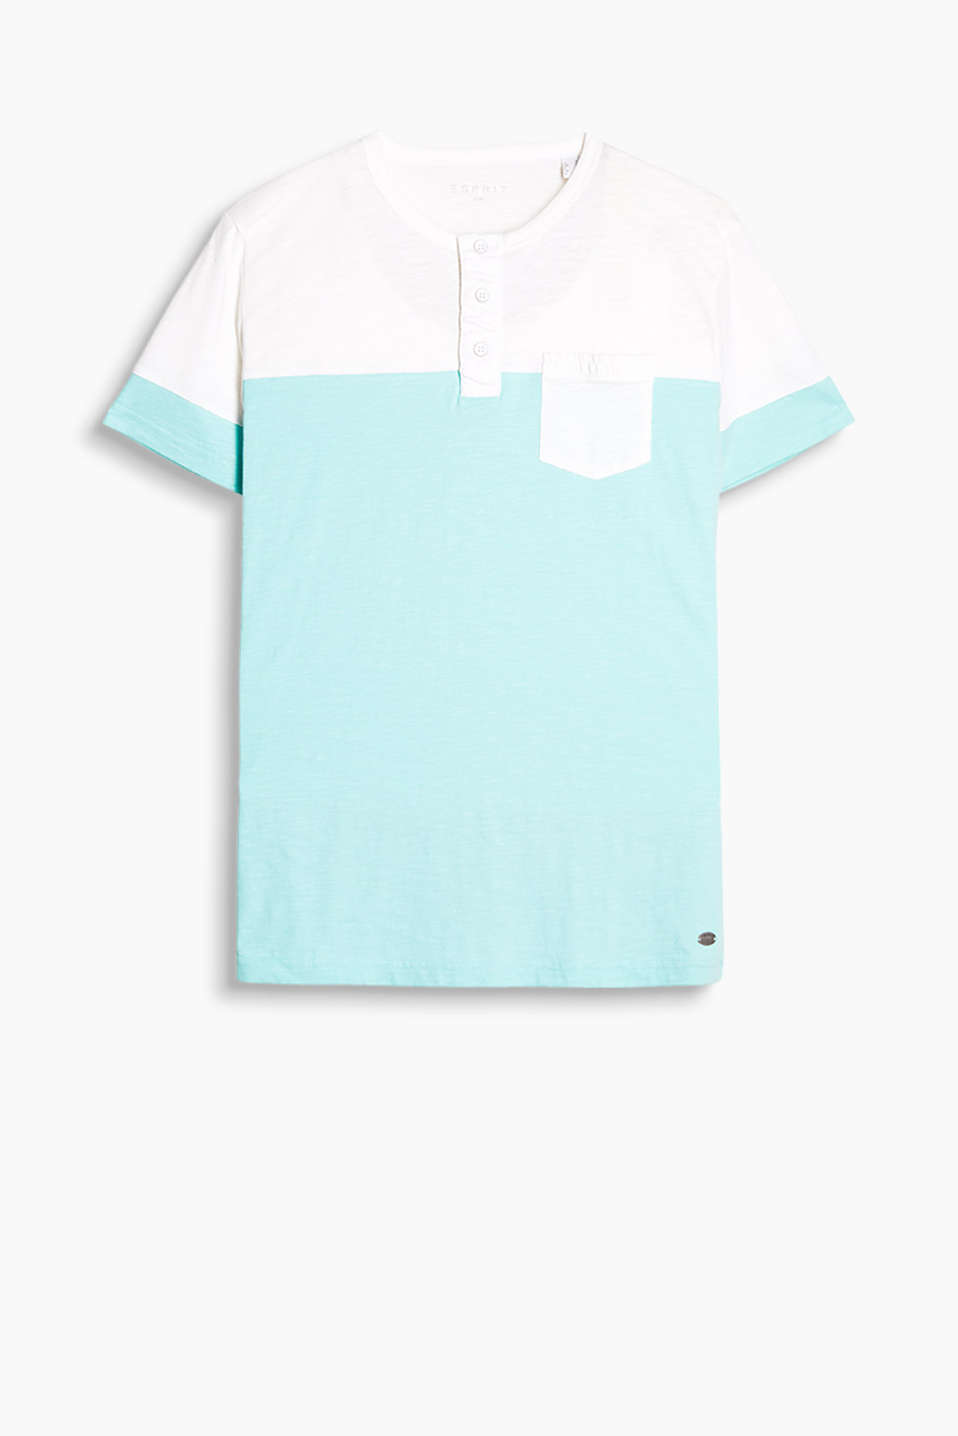 100% cotton, Henley-style T-shirt with a breast pocket